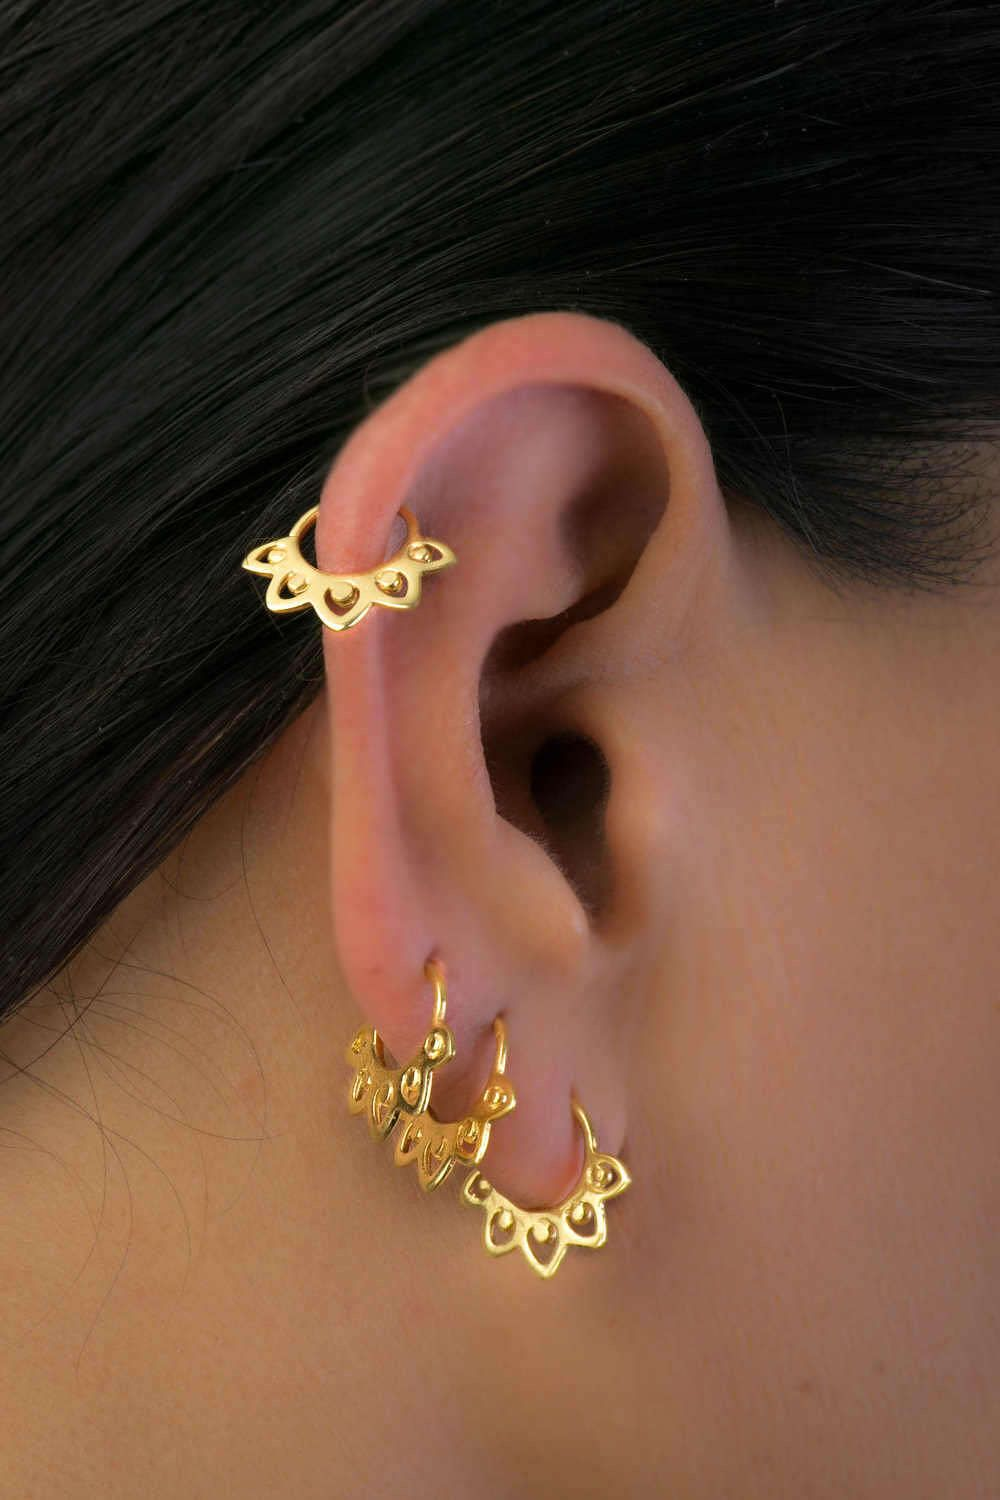 20G PLAIN BRASS NOSE RING SMALL 8MM RING NOSE STUD HELIX EAR HOOP TRAGUS